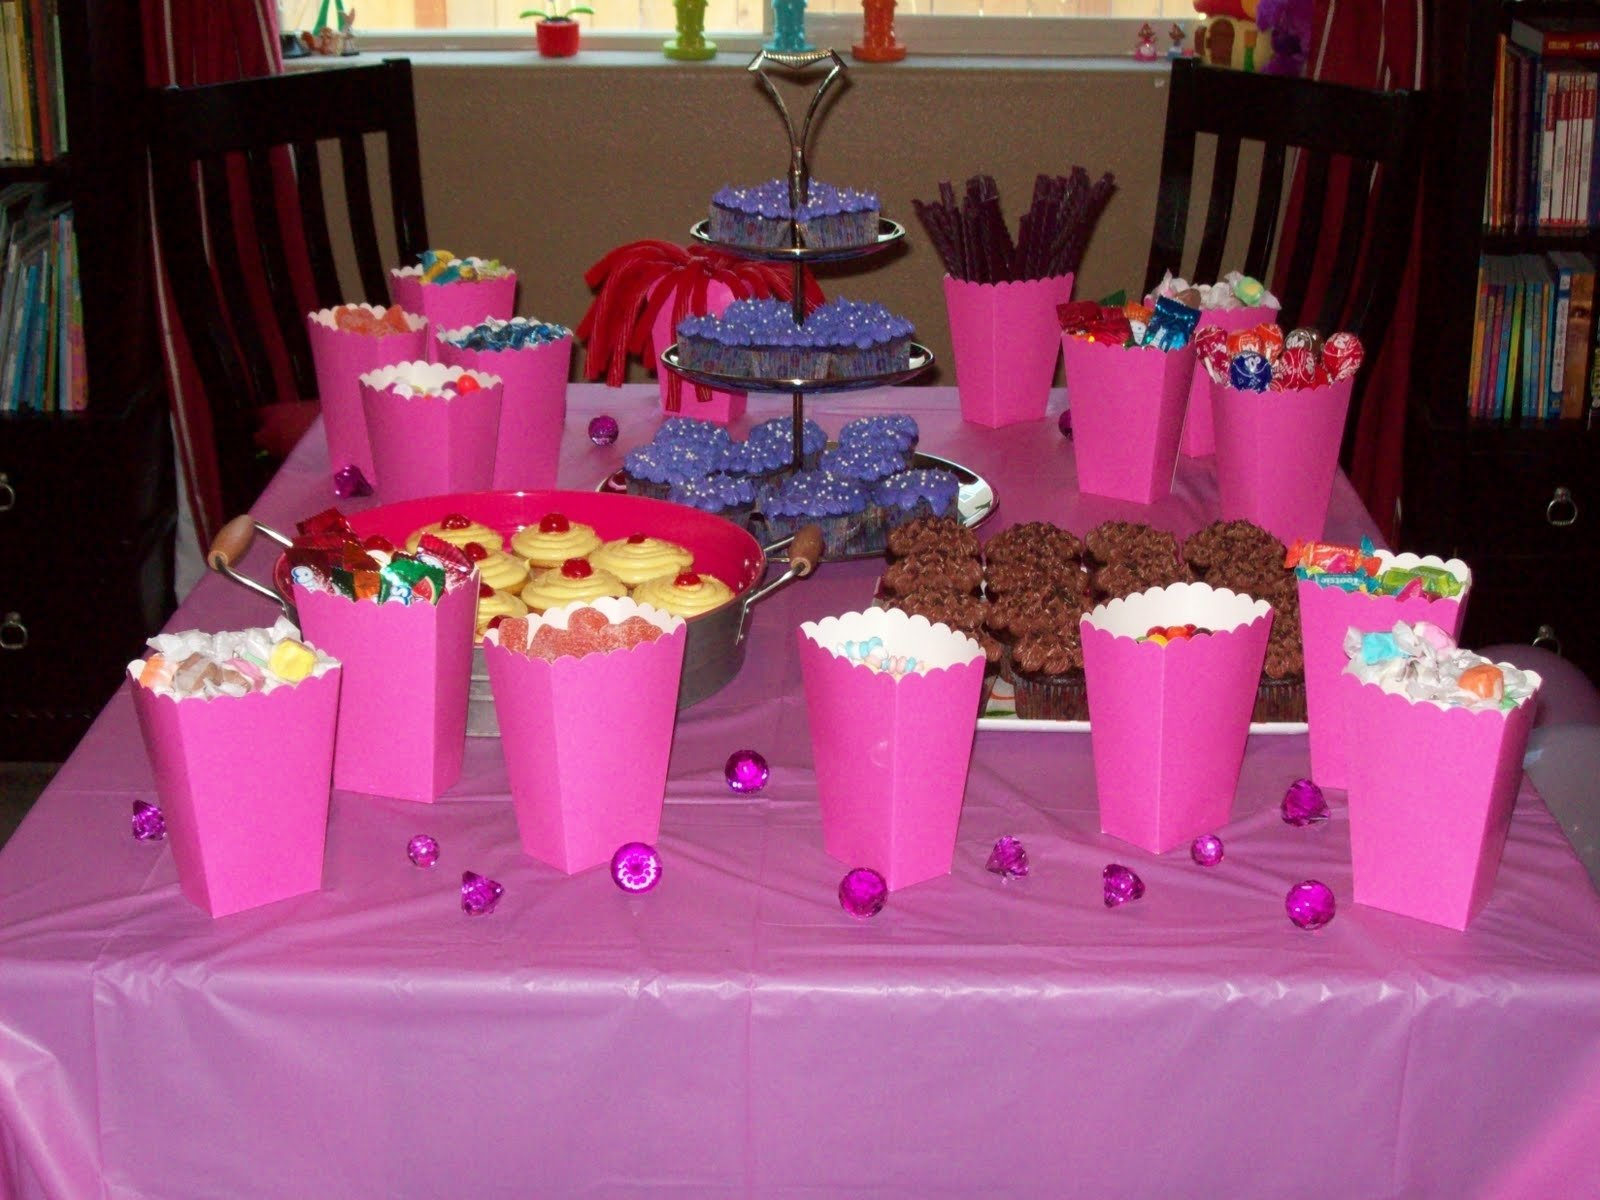 10 Cute Sweet 16 Party Ideas At Home aprils homemaking sweet sixteen party 8 2020